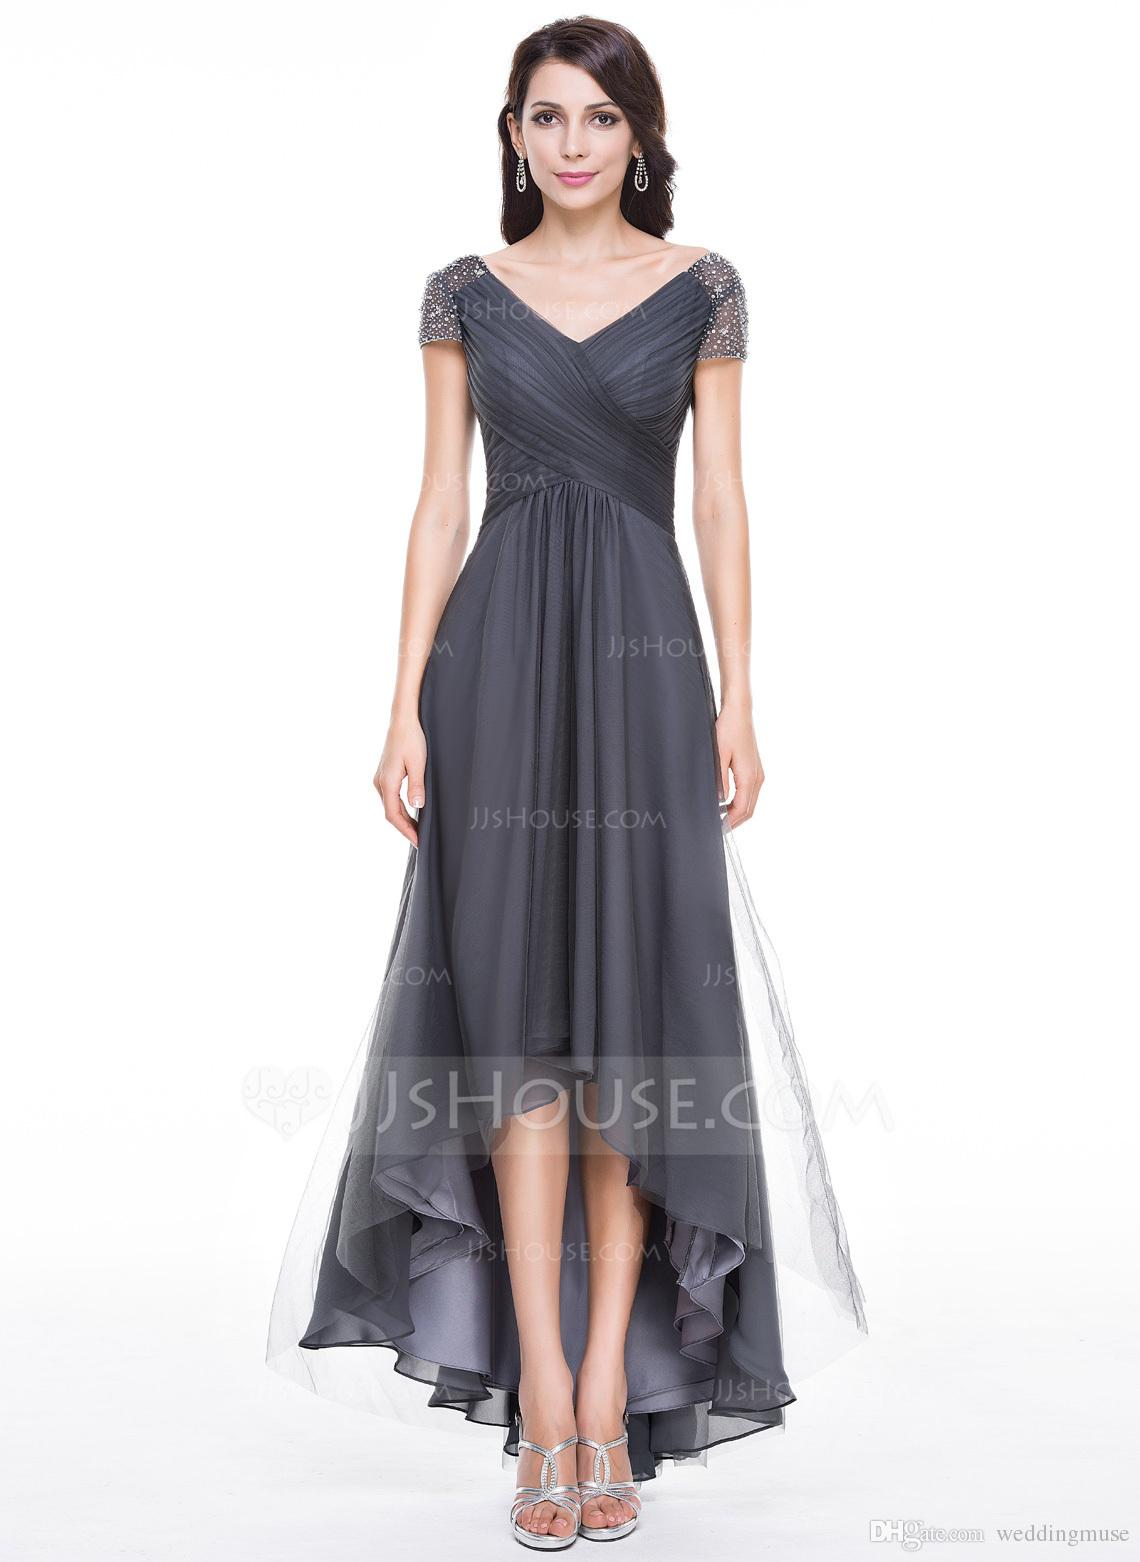 Hot 2018 Mother Of The Bride Formal V Neck Short Sleeve A Line High Low  With Beaded Chiffon Grey Mother Groom Dresses Plus Size Mother Of The Bride  ...